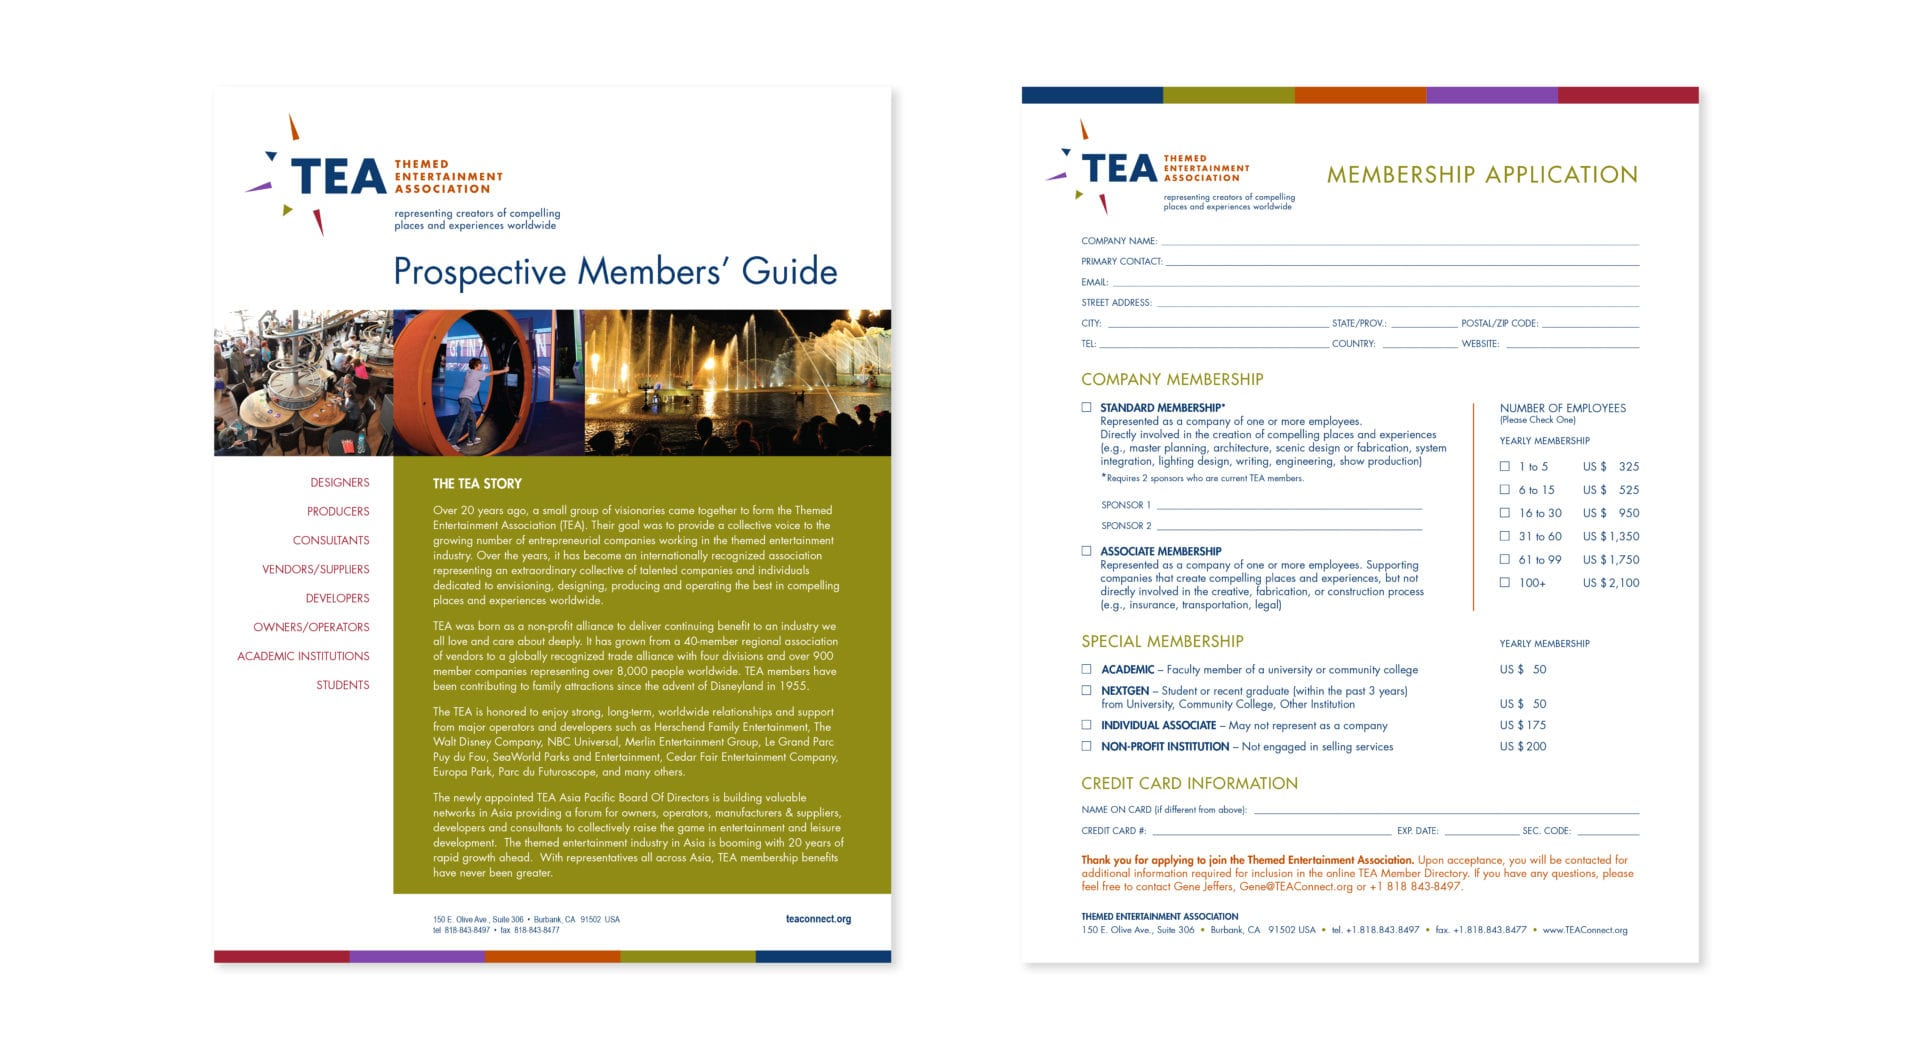 A membership application and prospective members' guide for the Themed Entertainment Association